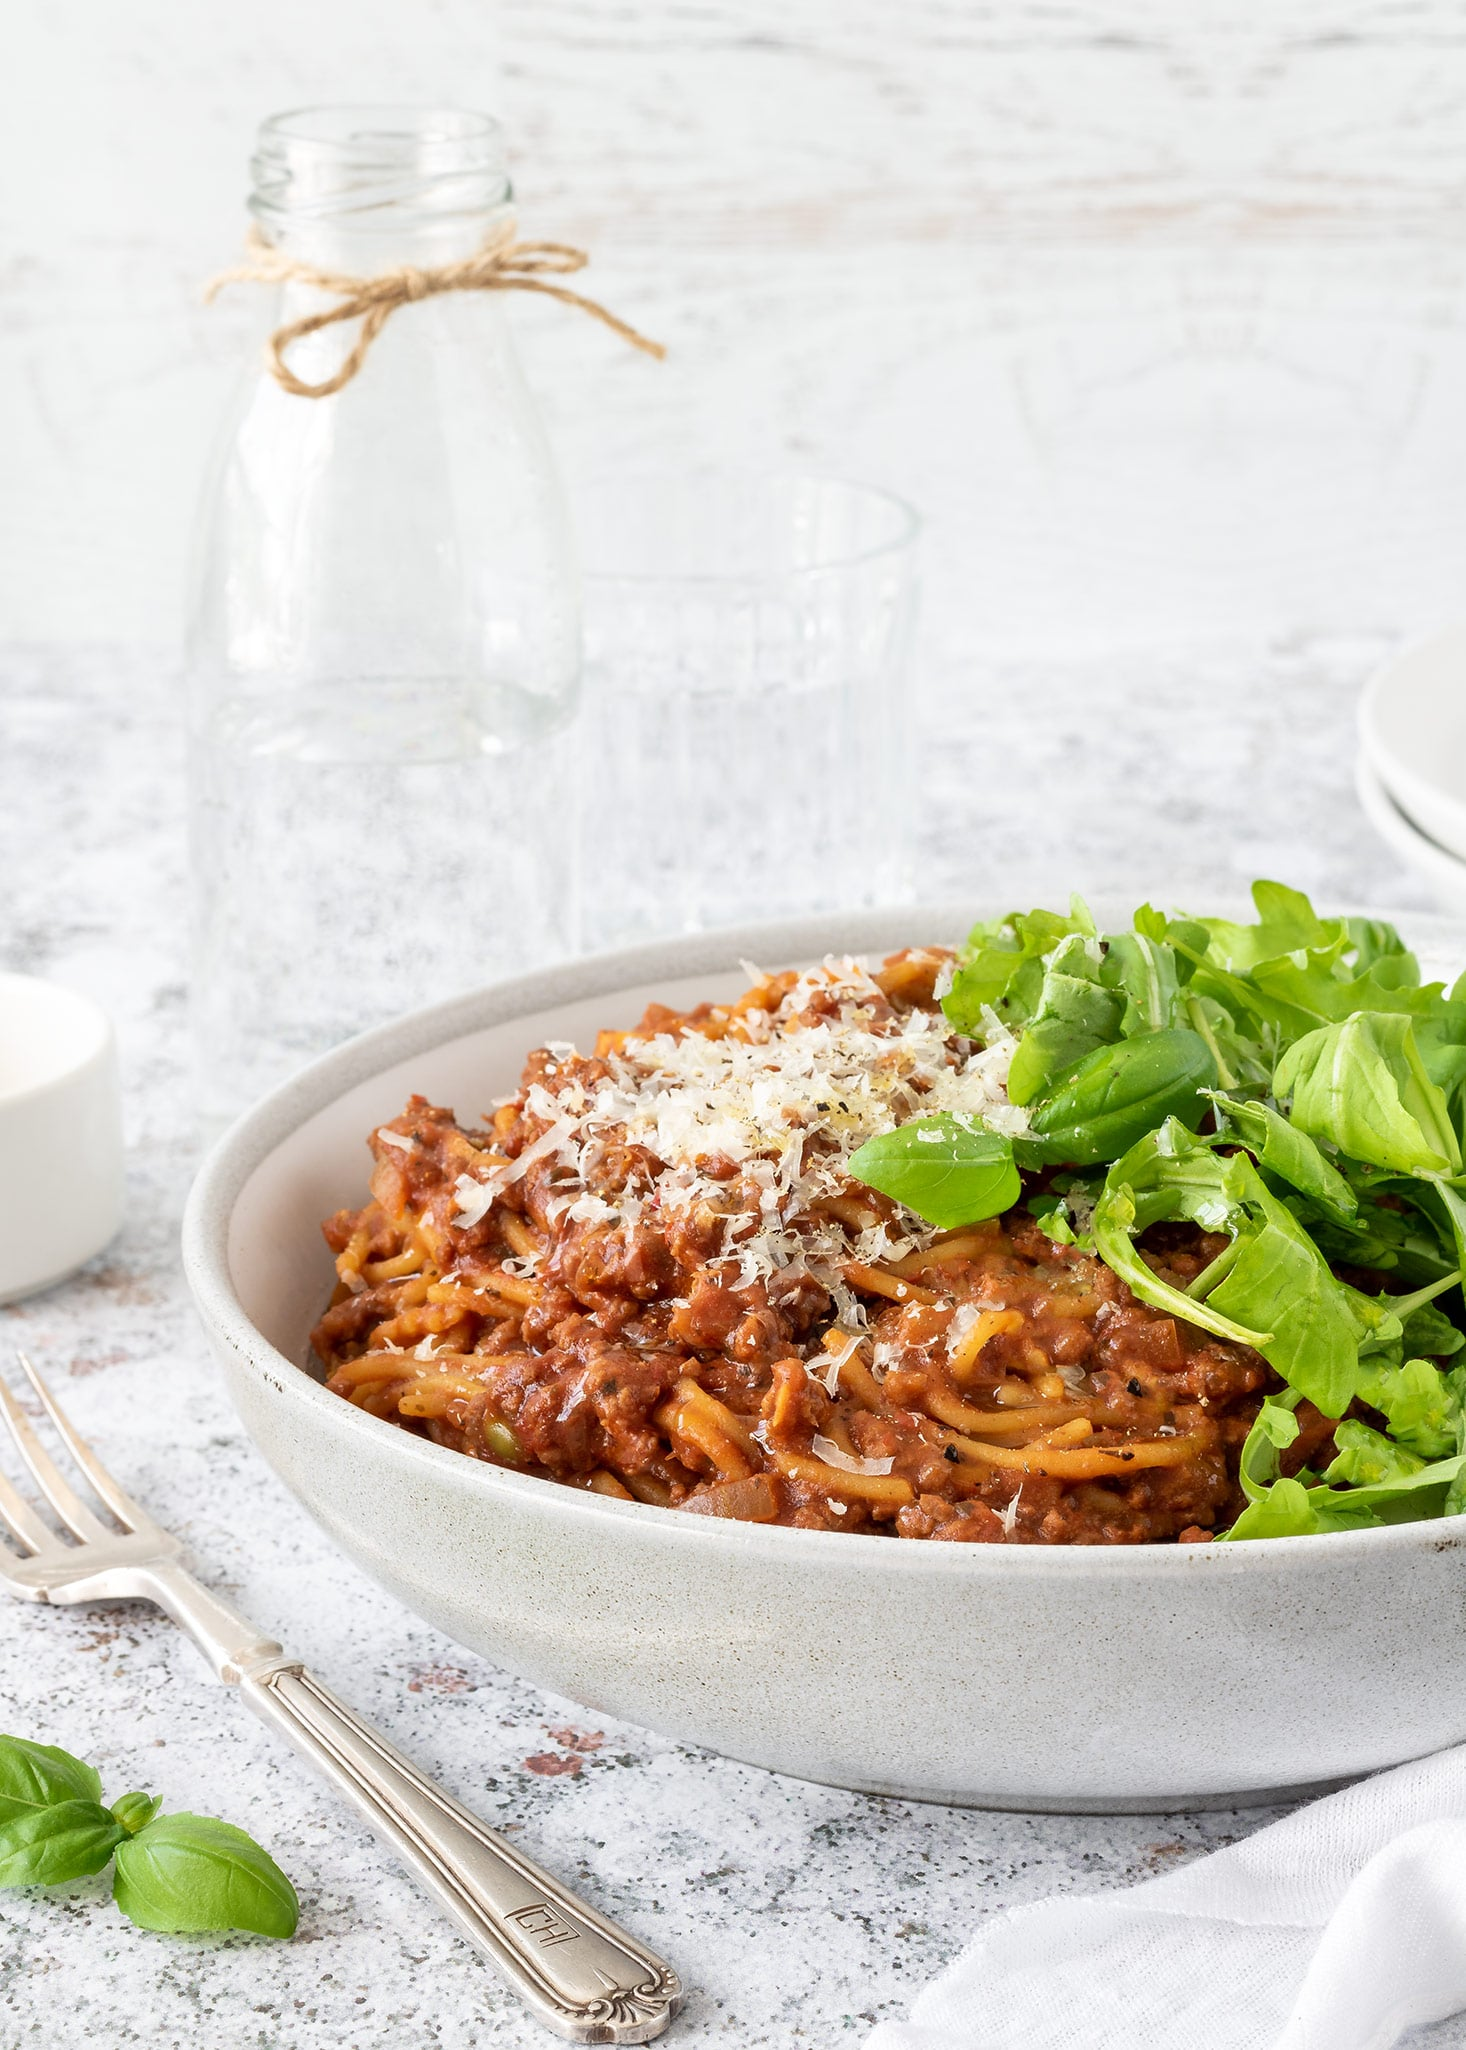 Spaghetti bolognese with parmesan and rocket.